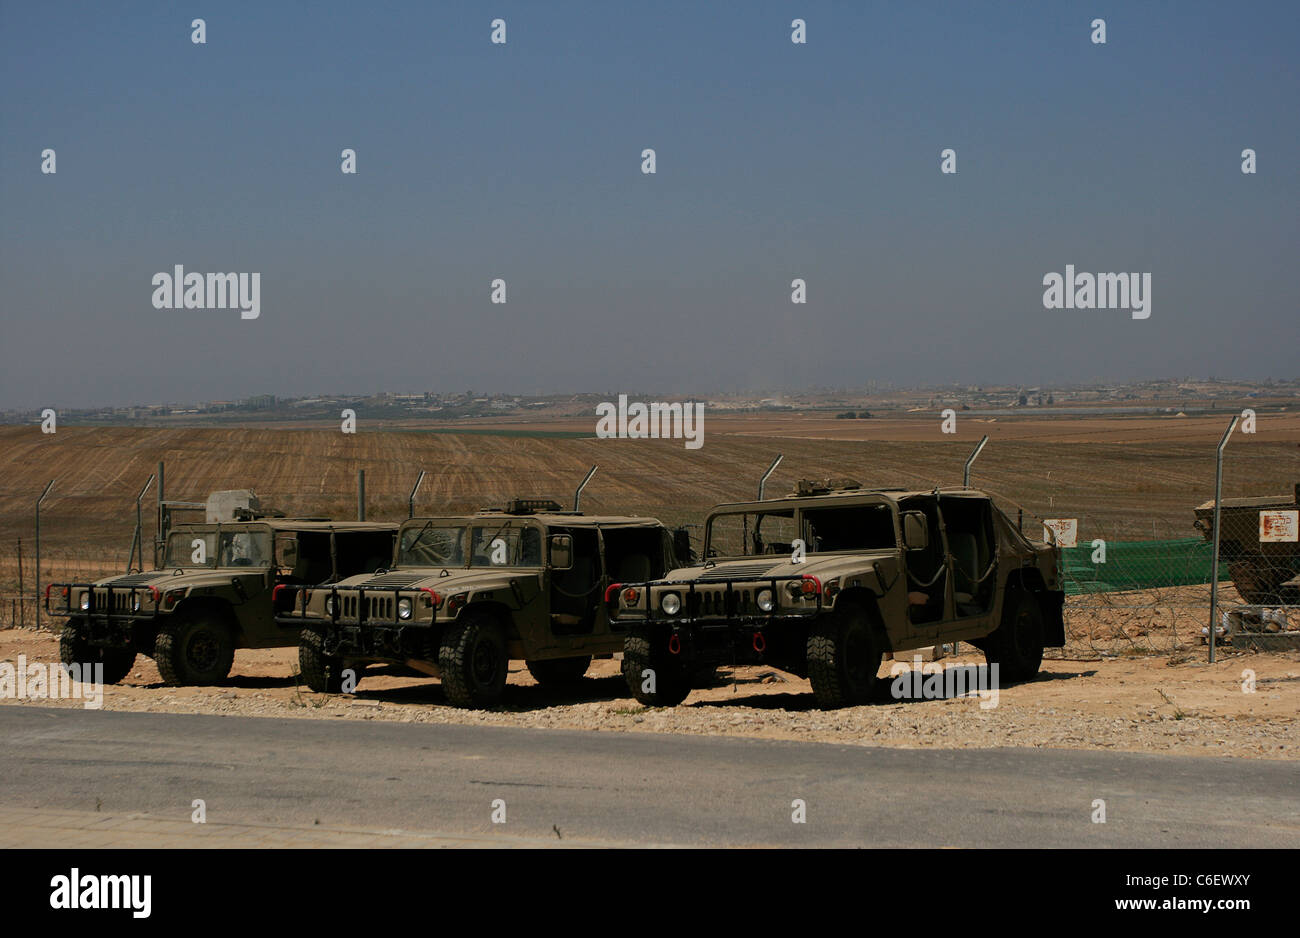 A military base of the Israeli army ( IDF ) on the border between Israel and Gaza. - Stock Image